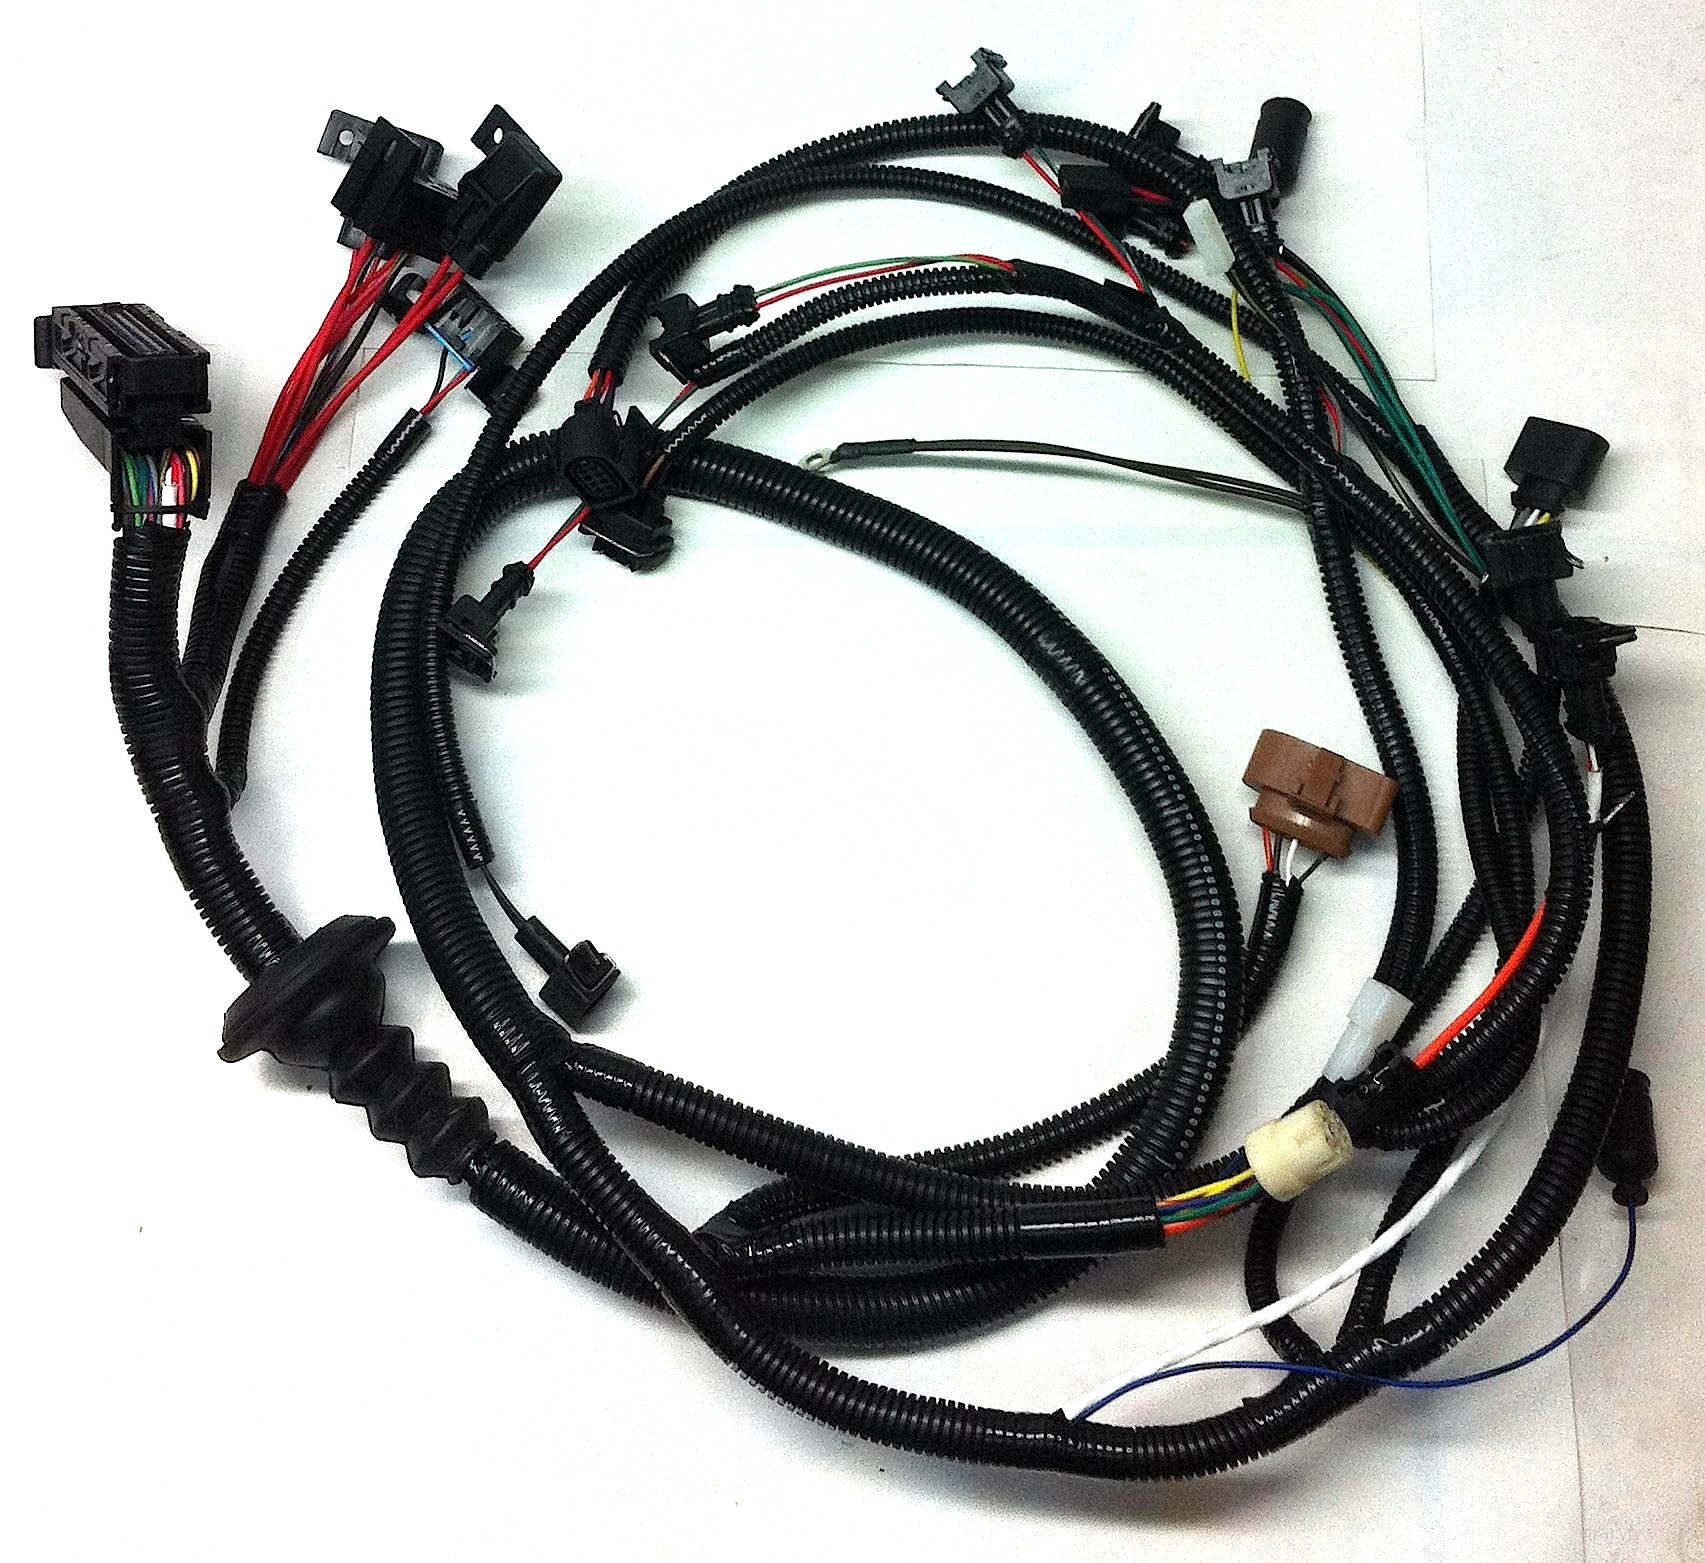 full wiring harness car data wiring diagram today Wiring Harness Glue 2lr tiico conversion wiring harness foreign auto \u0026 supply, inc hinged clamps wiring harness 2lr